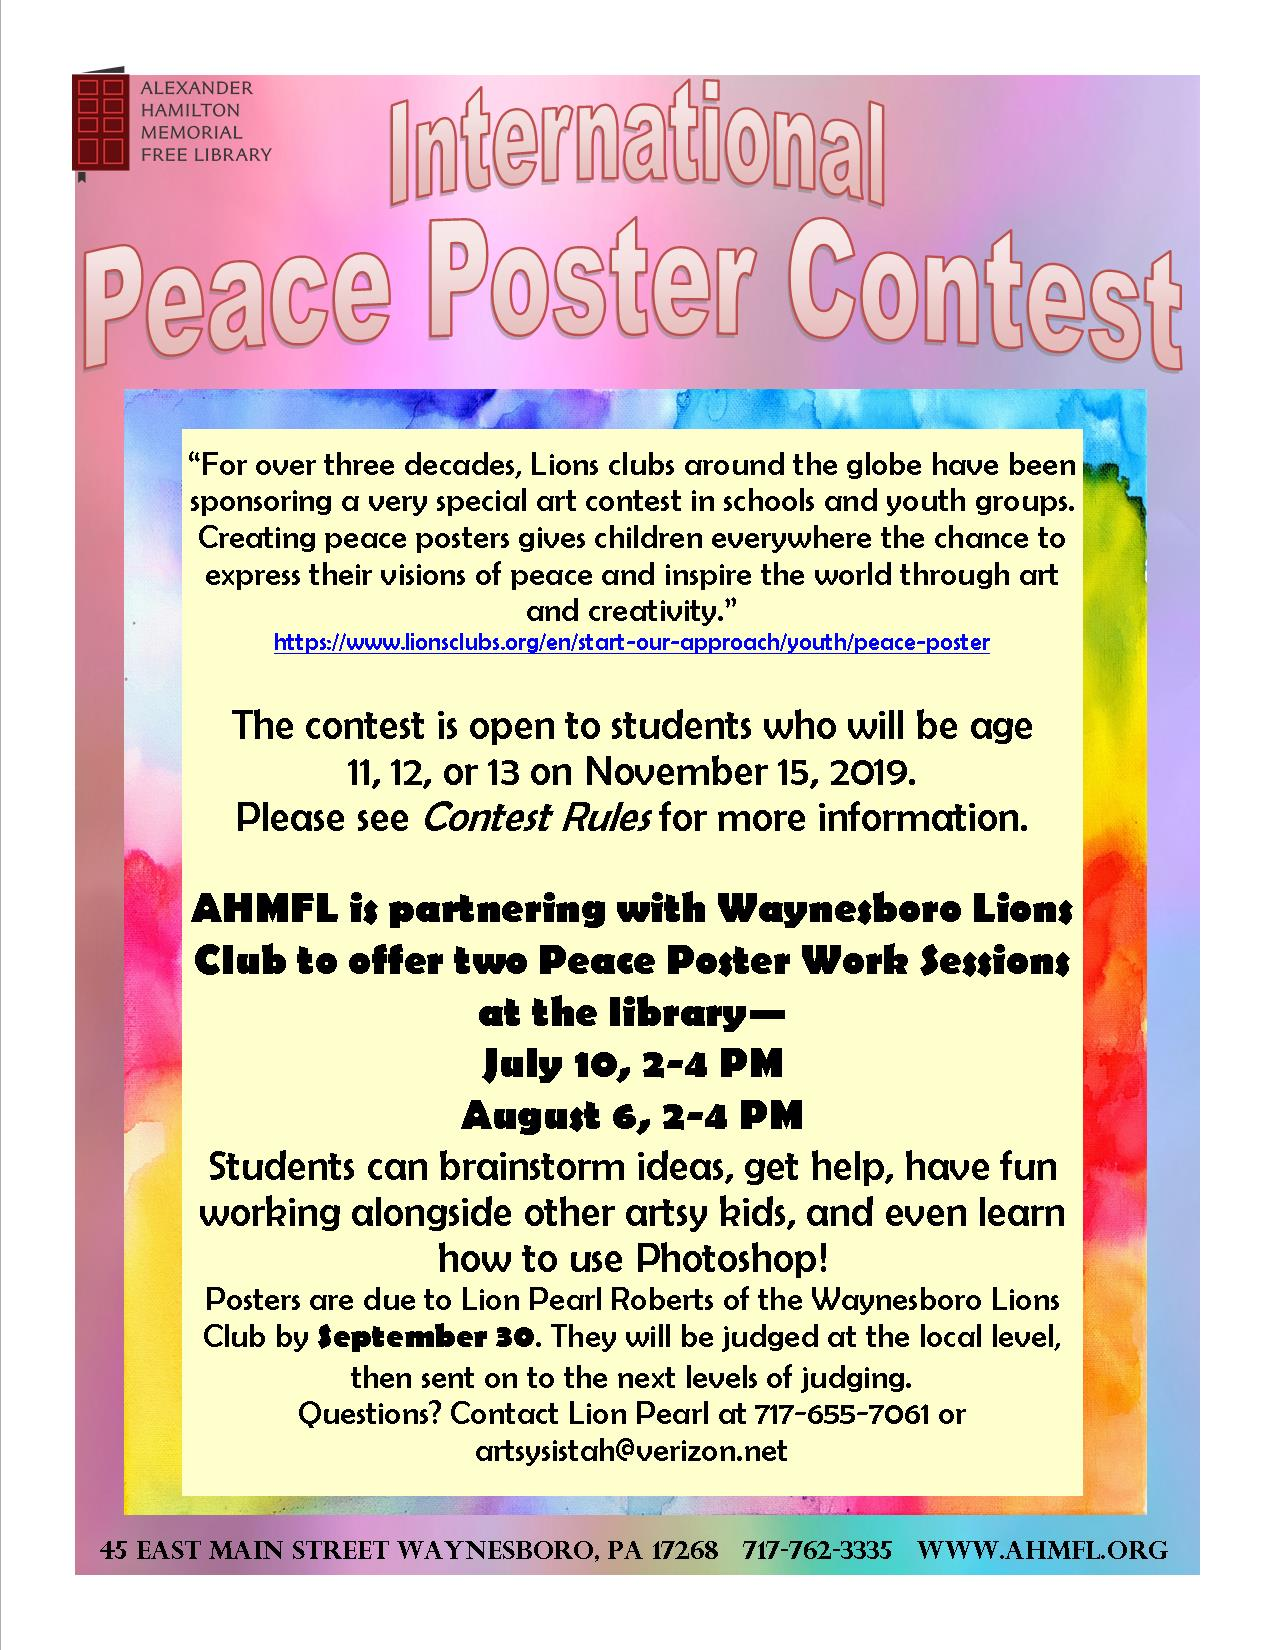 Peace Poster Contest flyer.jpg